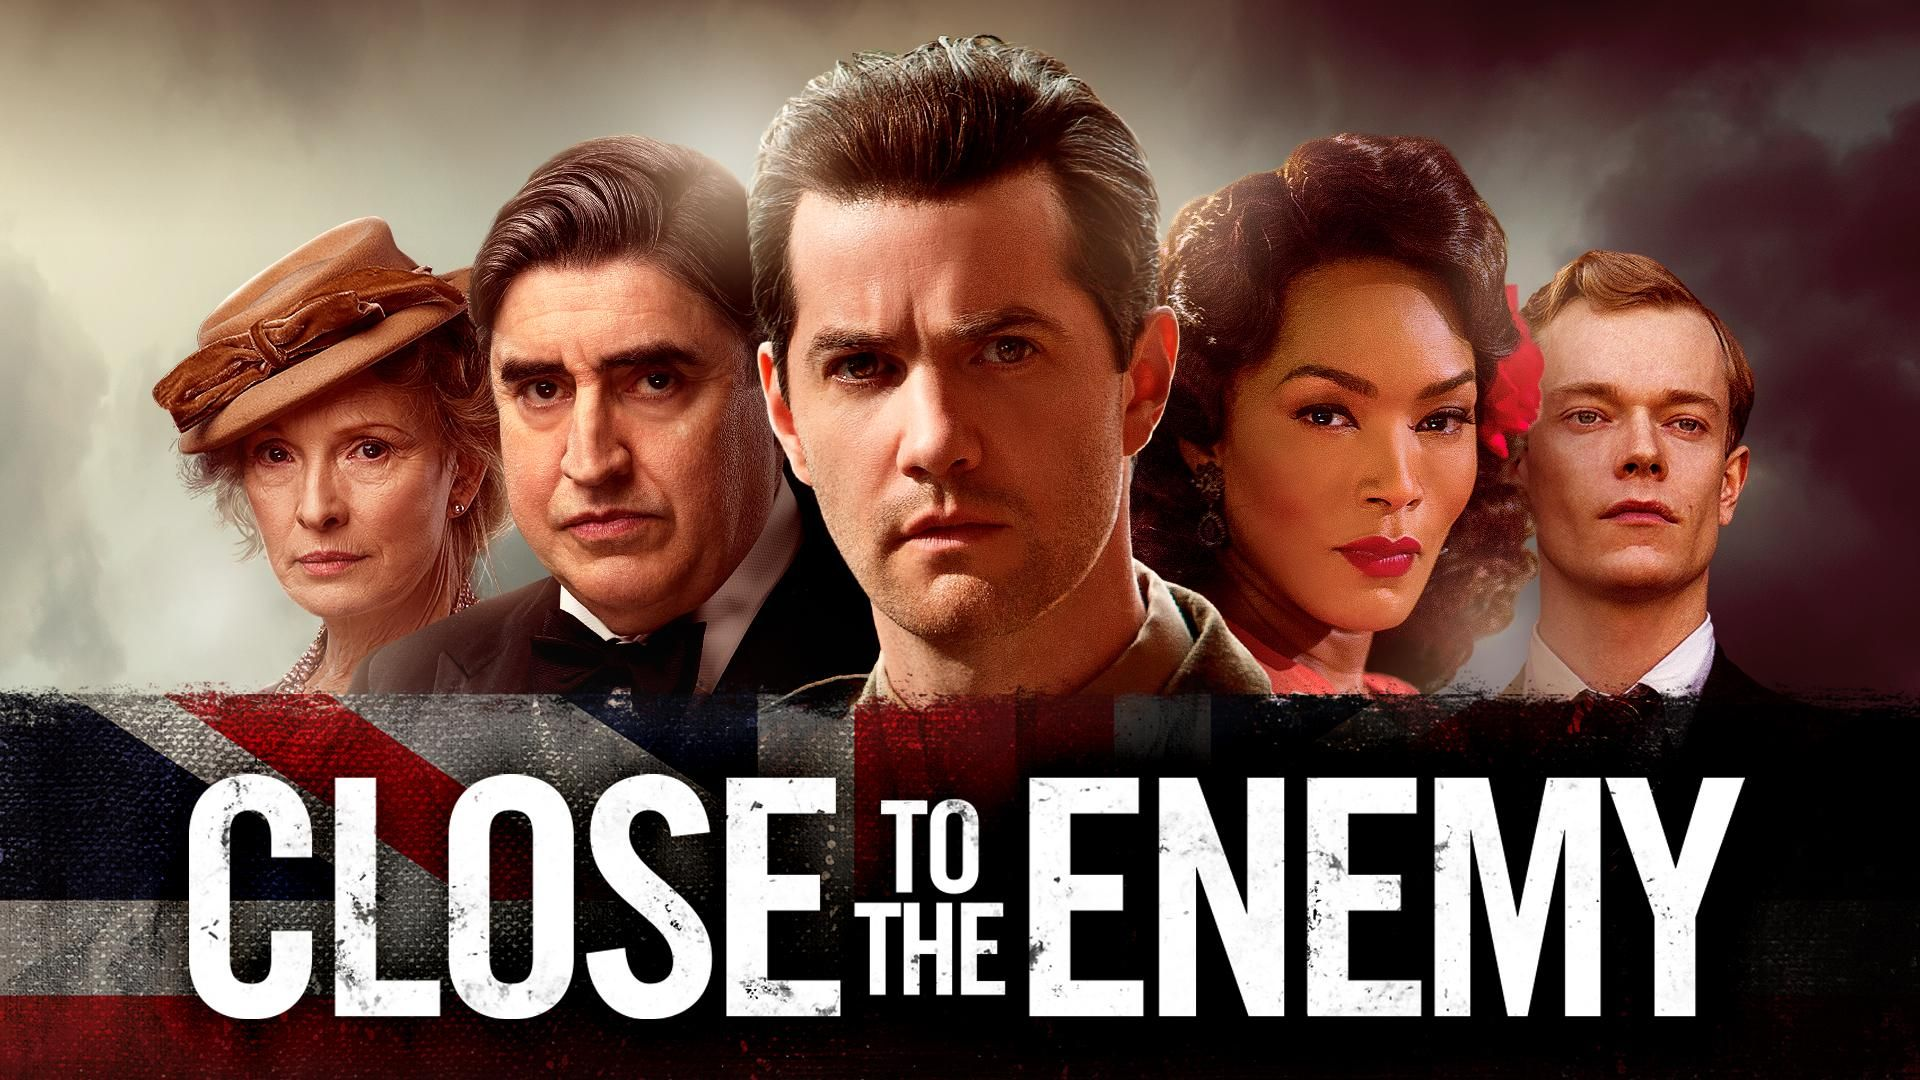 ���� - BBC Two is yet to renew Close to the Enemy for series 2